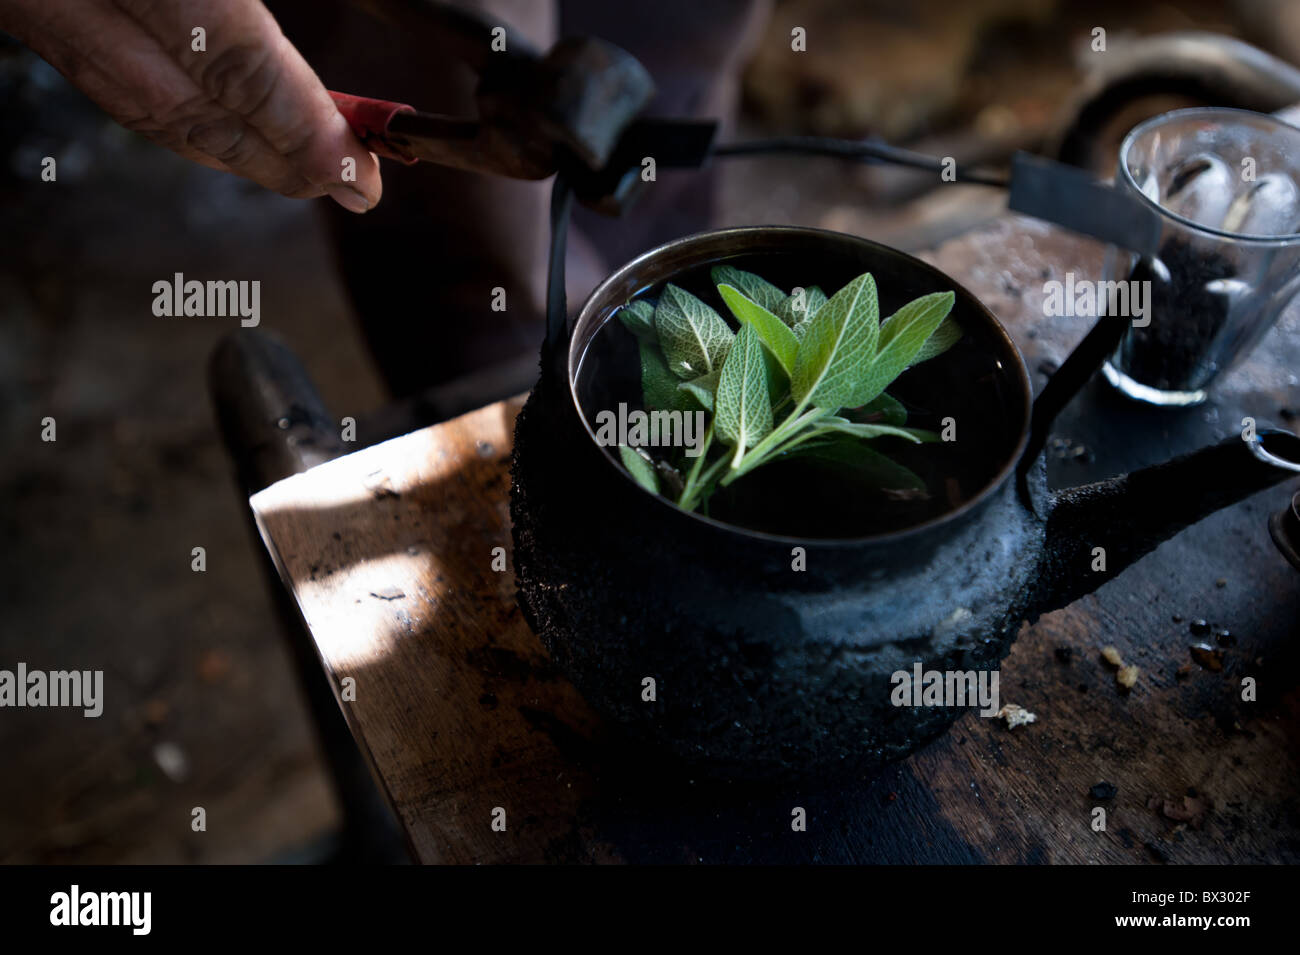 A soot-blackened tea pot contains fresh sage leaves for extra flavor. - Stock Image